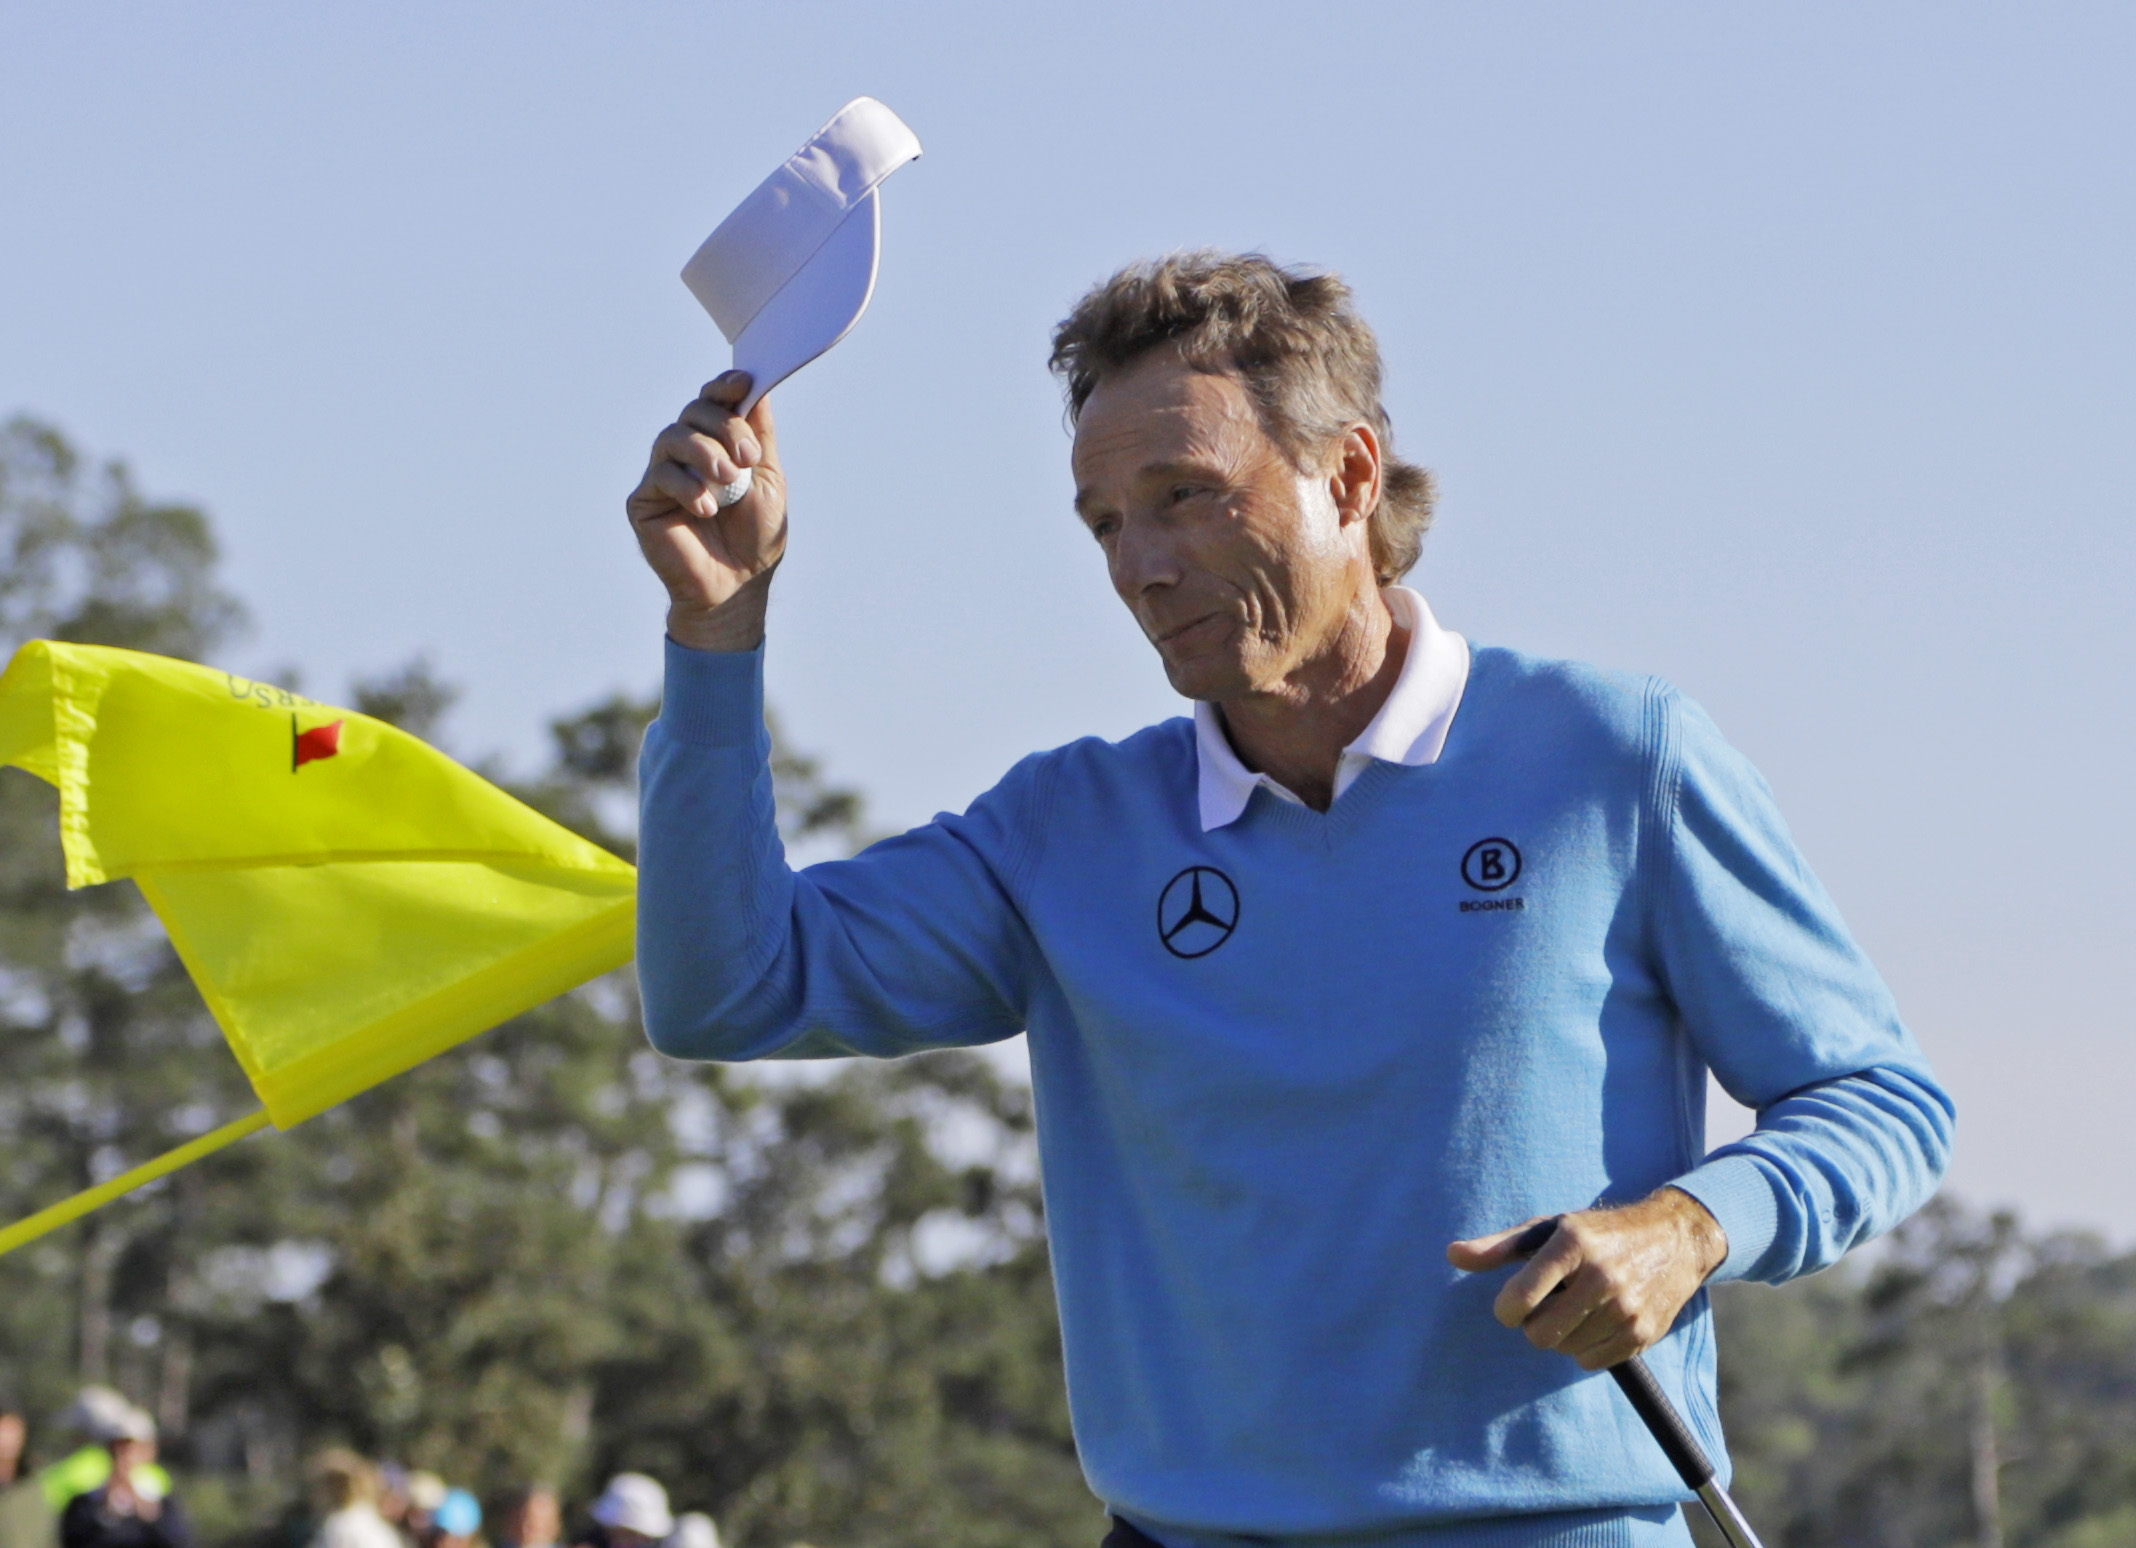 Bernhard Langer, of Germany, tips his cap after putting out on the 18th hole during the third round of the Masters golf tournament Saturday, April 9, 2016, in Augusta, Ga. (AP Photo/Jae C. Hong)